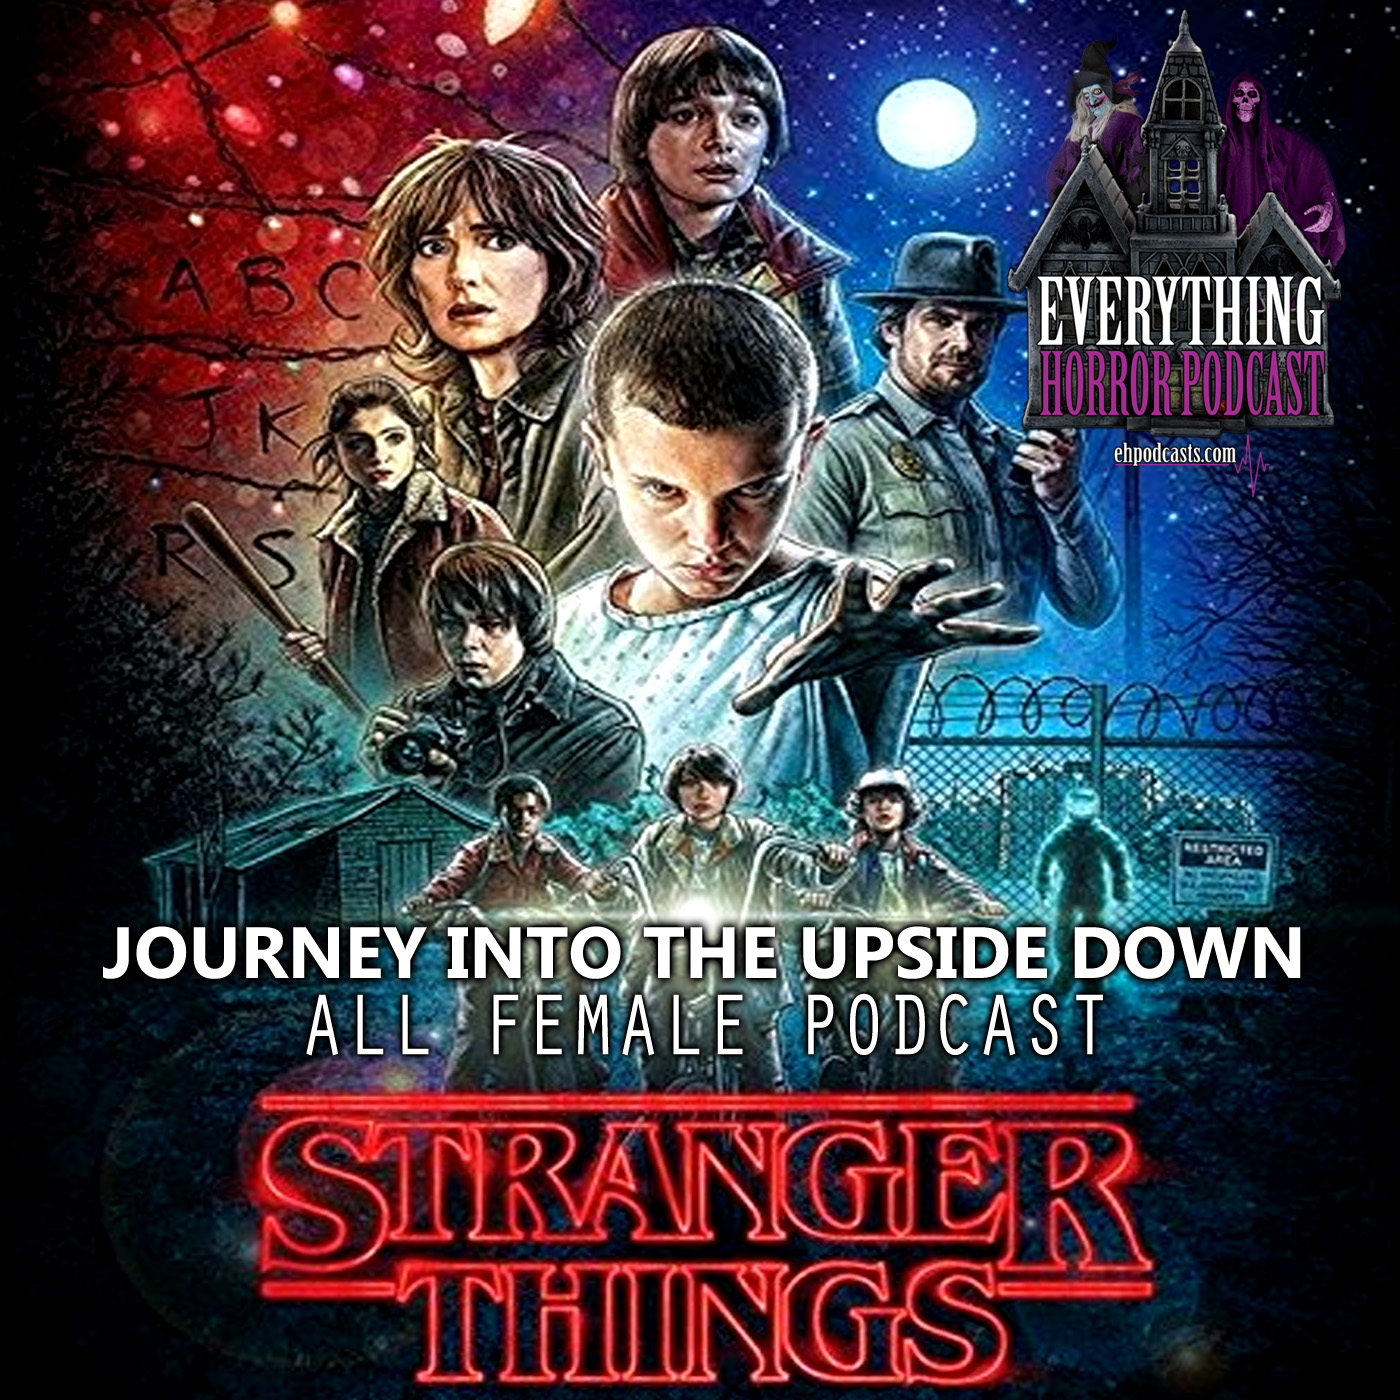 Stranger Things: Journey Into the Upside Down